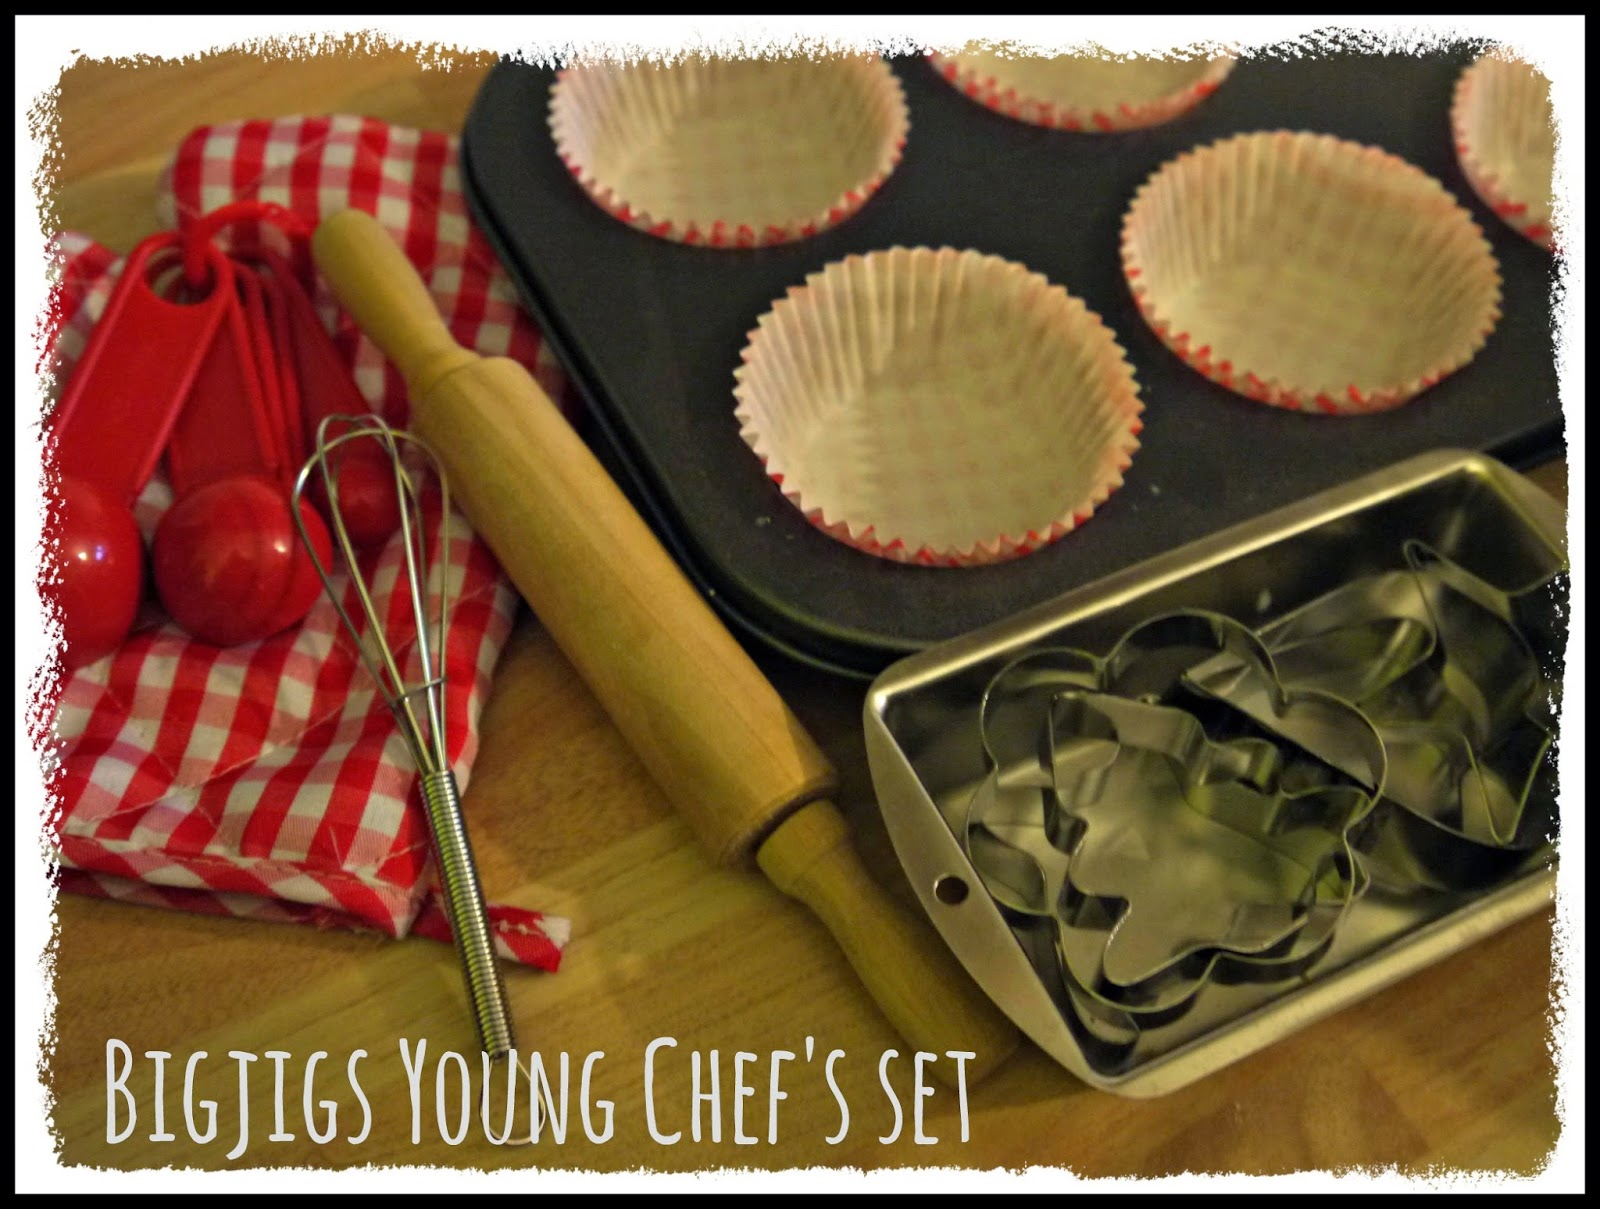 Bigjigs Young Chef's Baking Kit